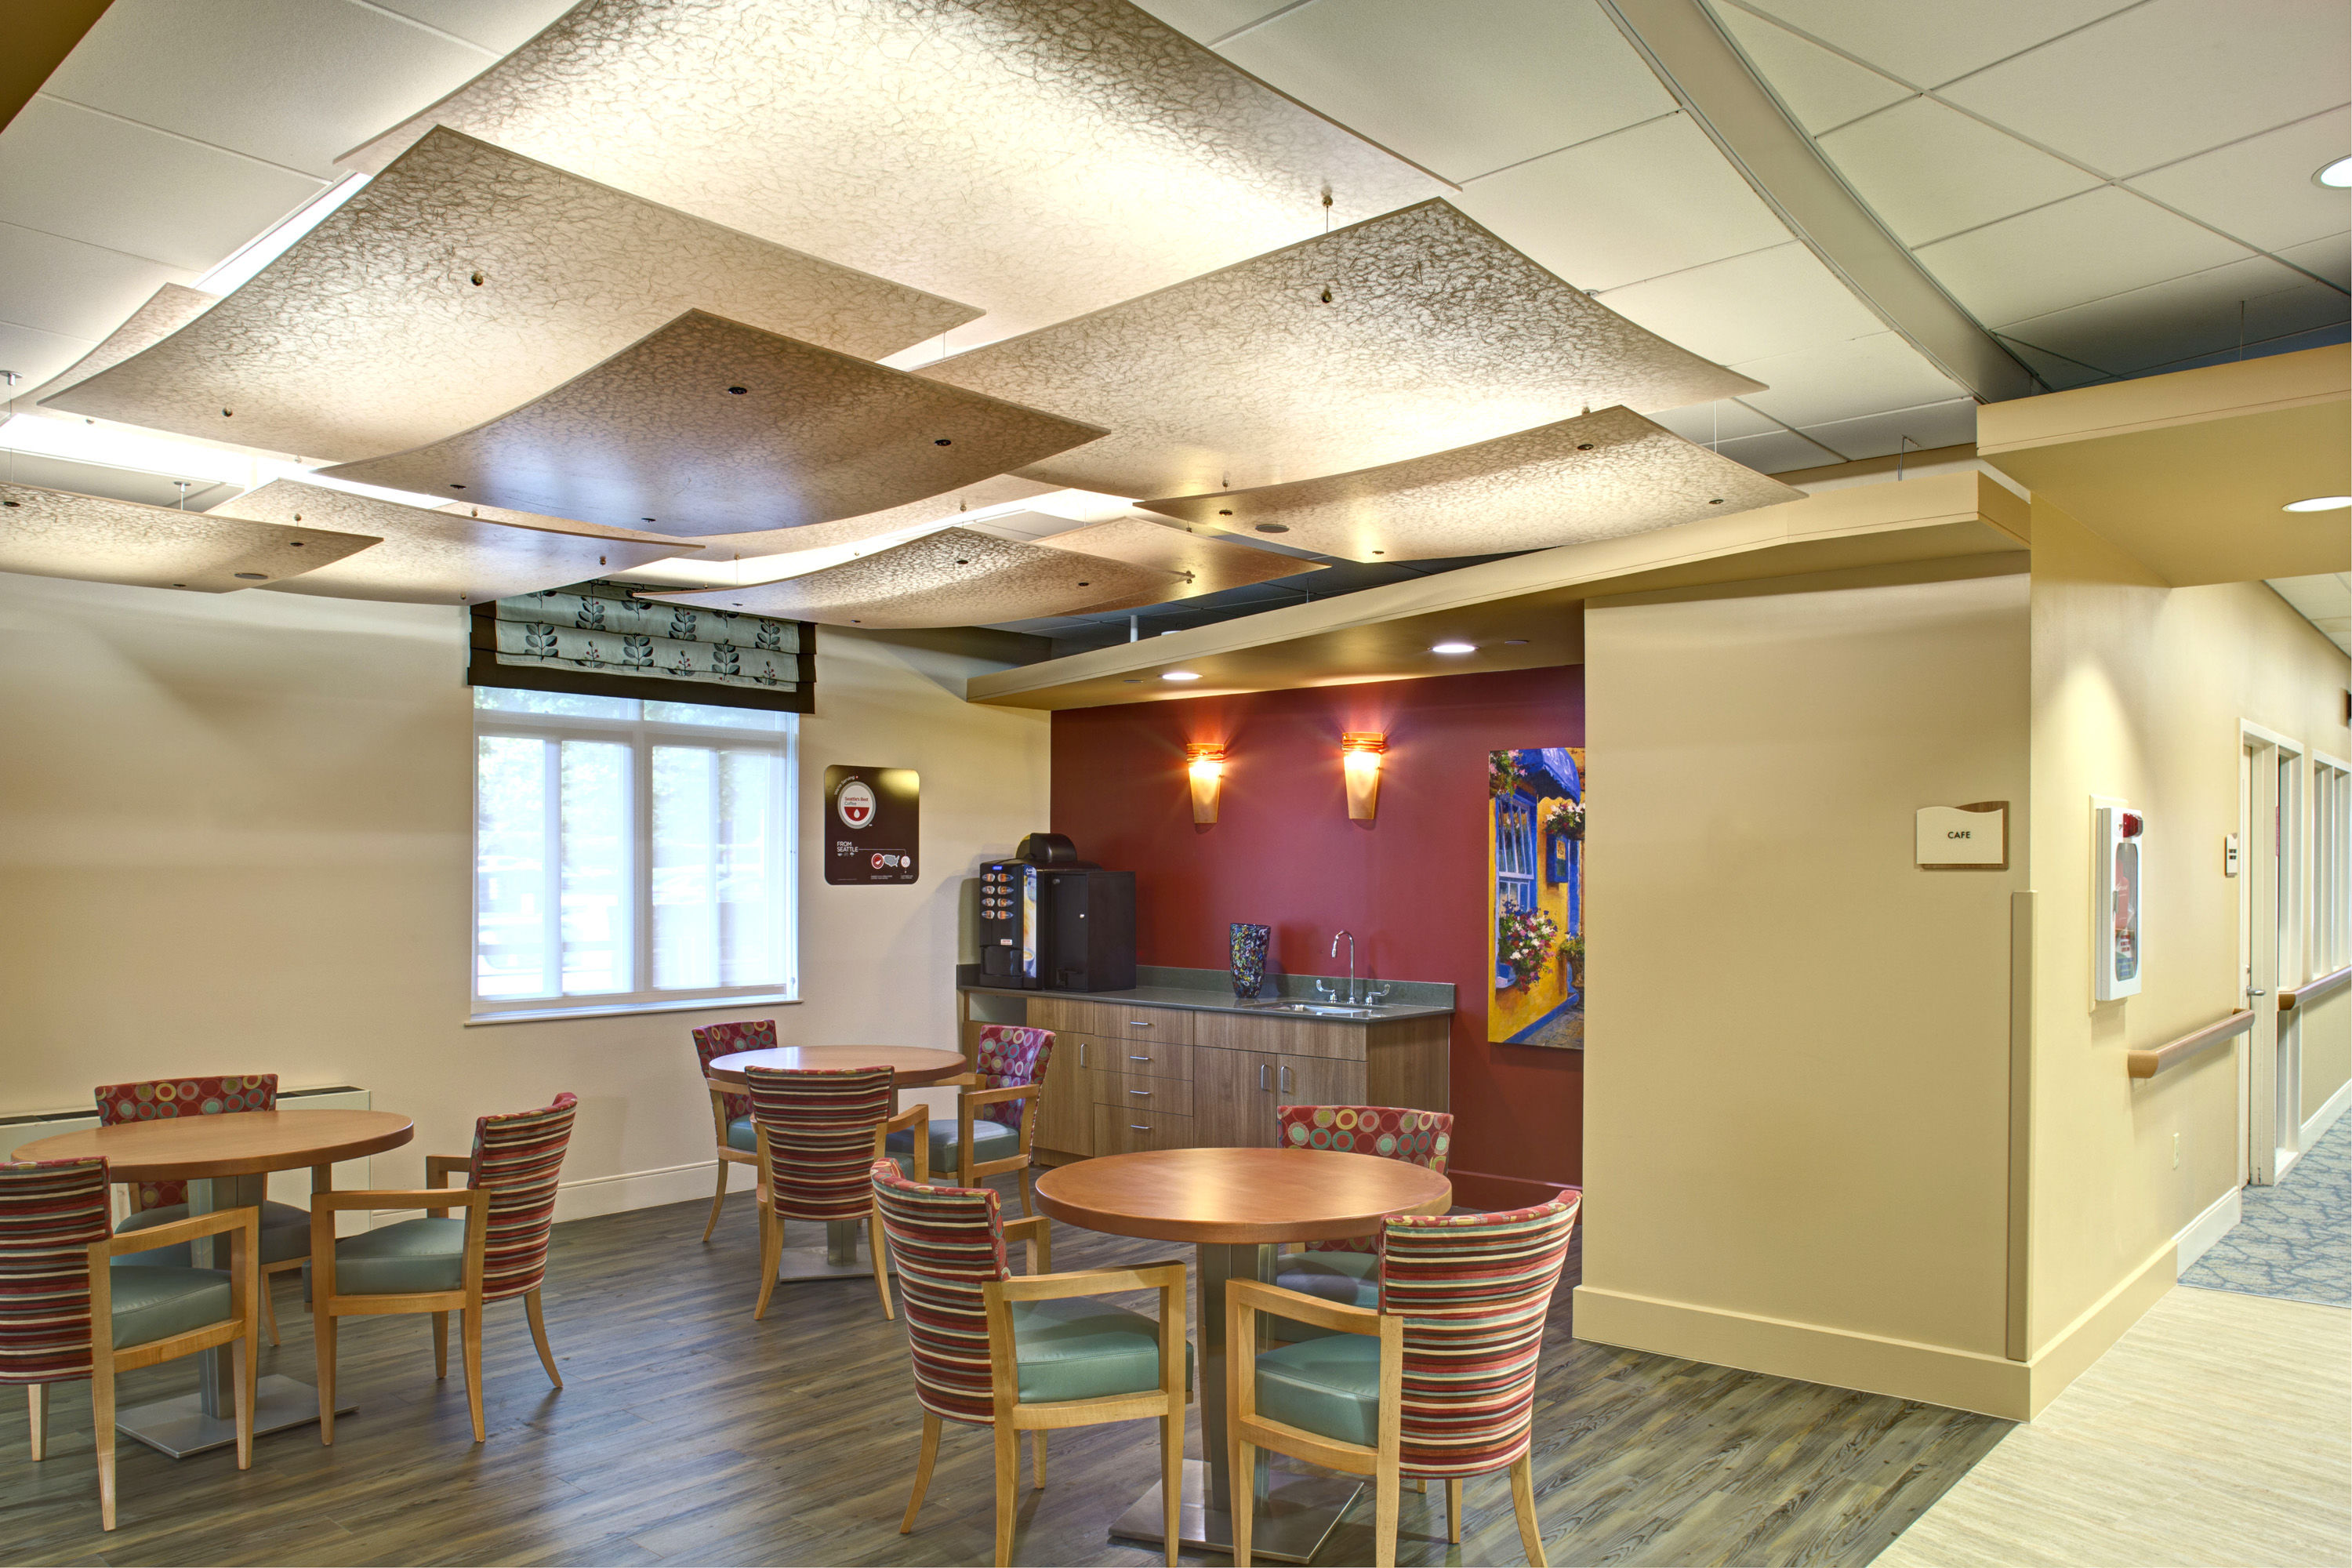 Wasserman Residence Physical Therapy/Rehabilitation Center Senior Living Healthcare Design Cafe